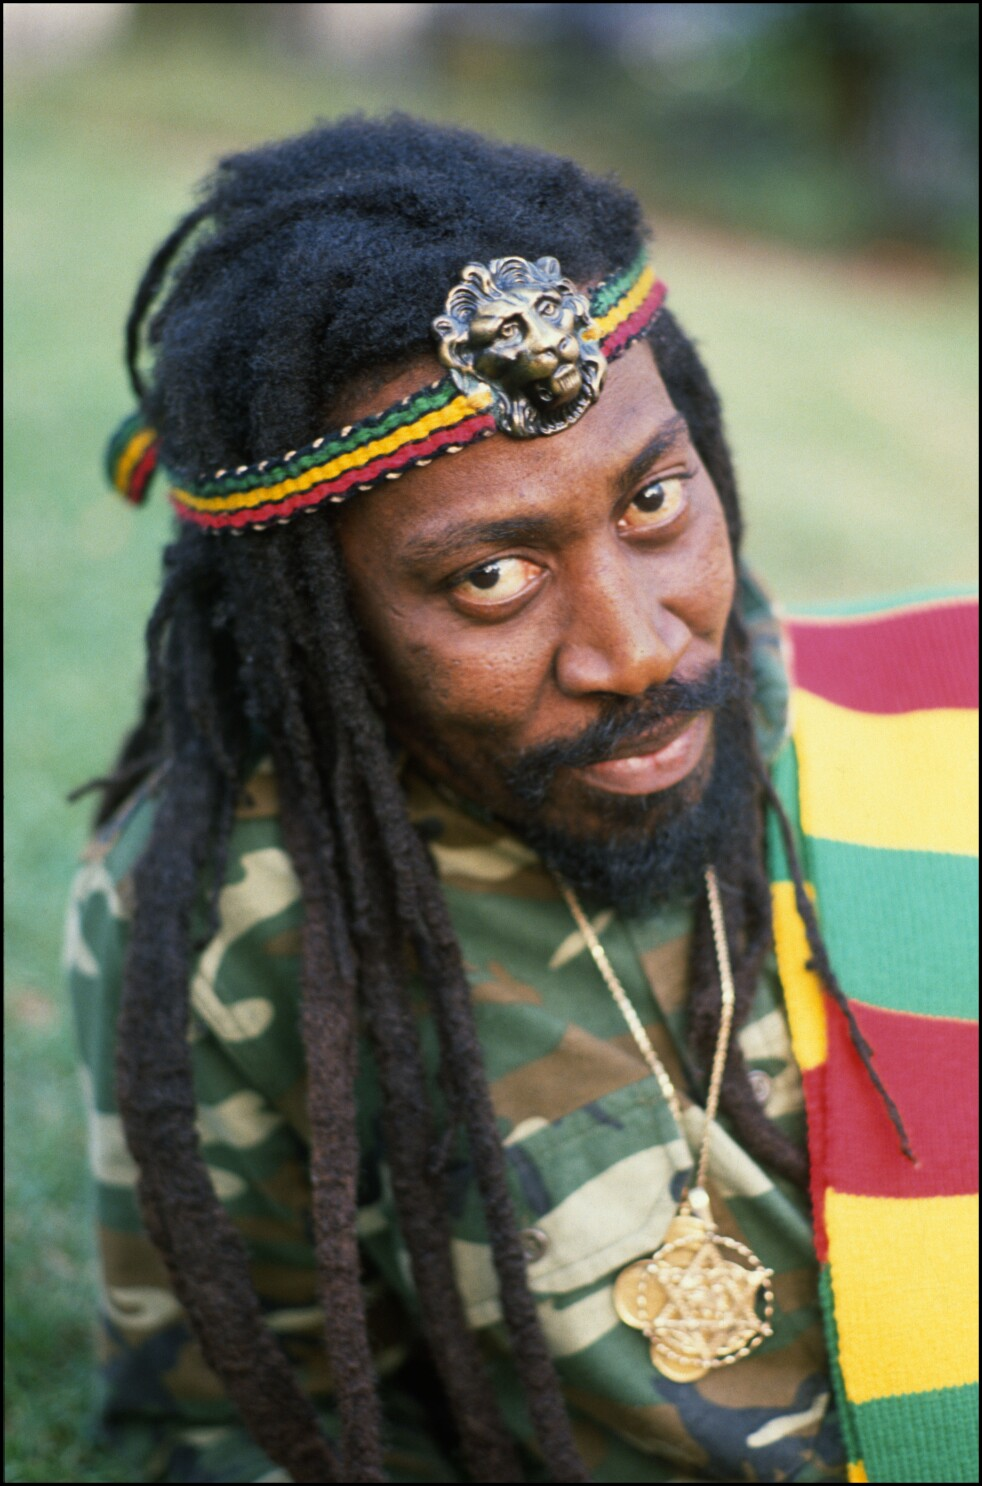 Bunny Wailer, of famed reggae group the Wailers, dies at 73 - Los Angeles Times